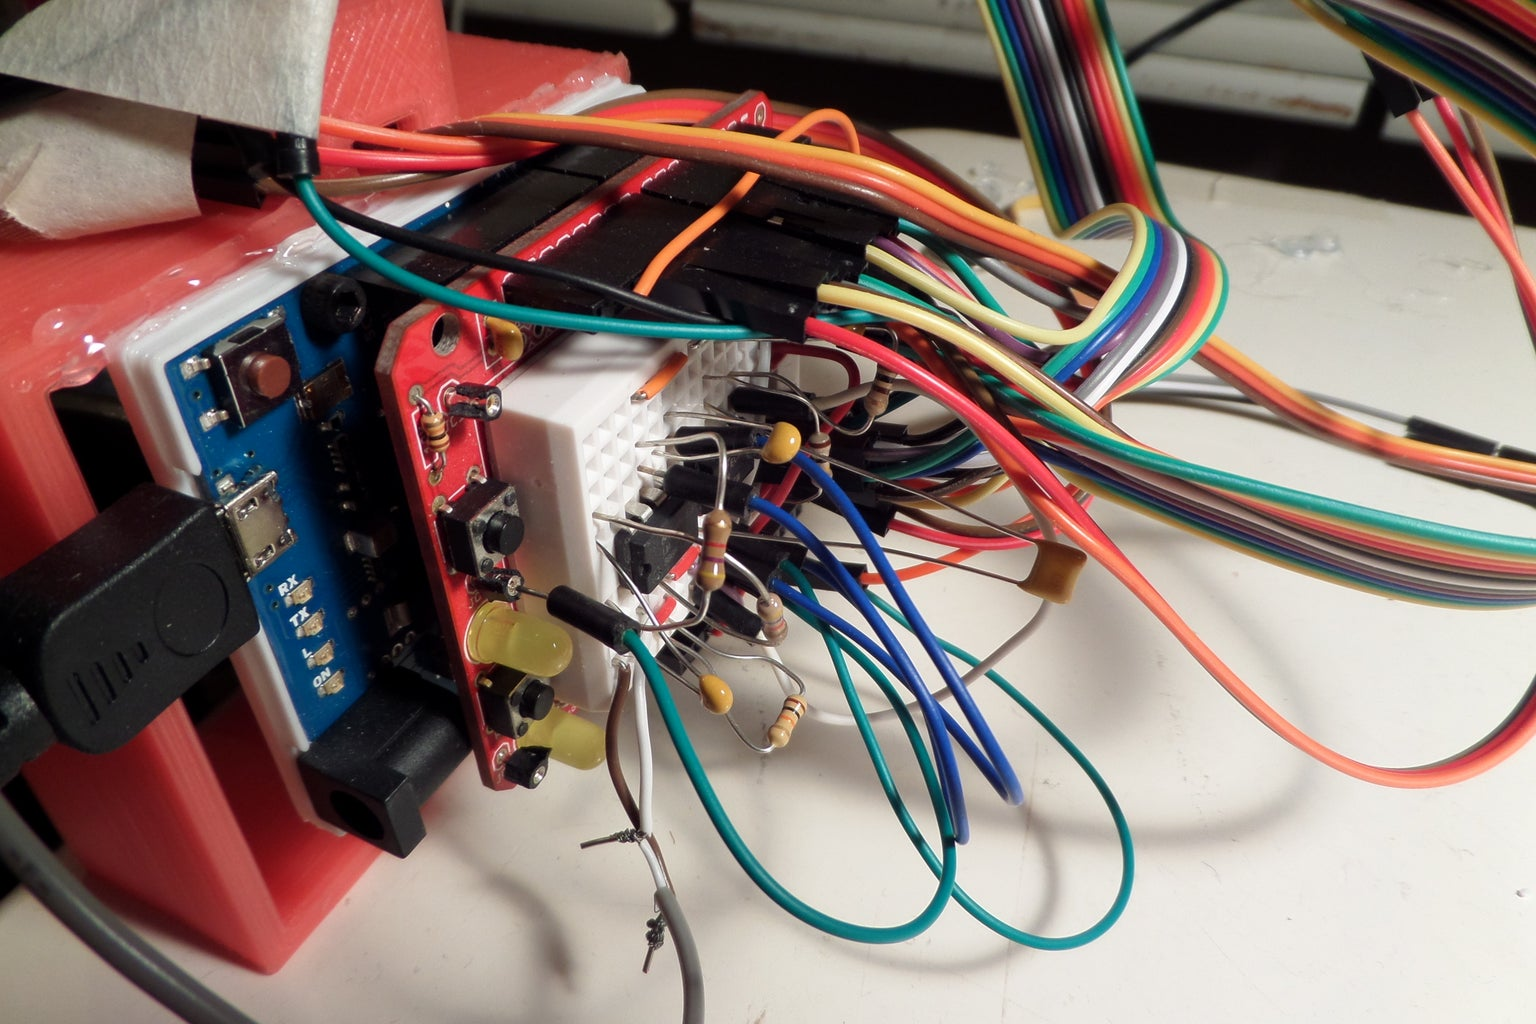 Connect the Servos and the Sensors and Build the Circuit